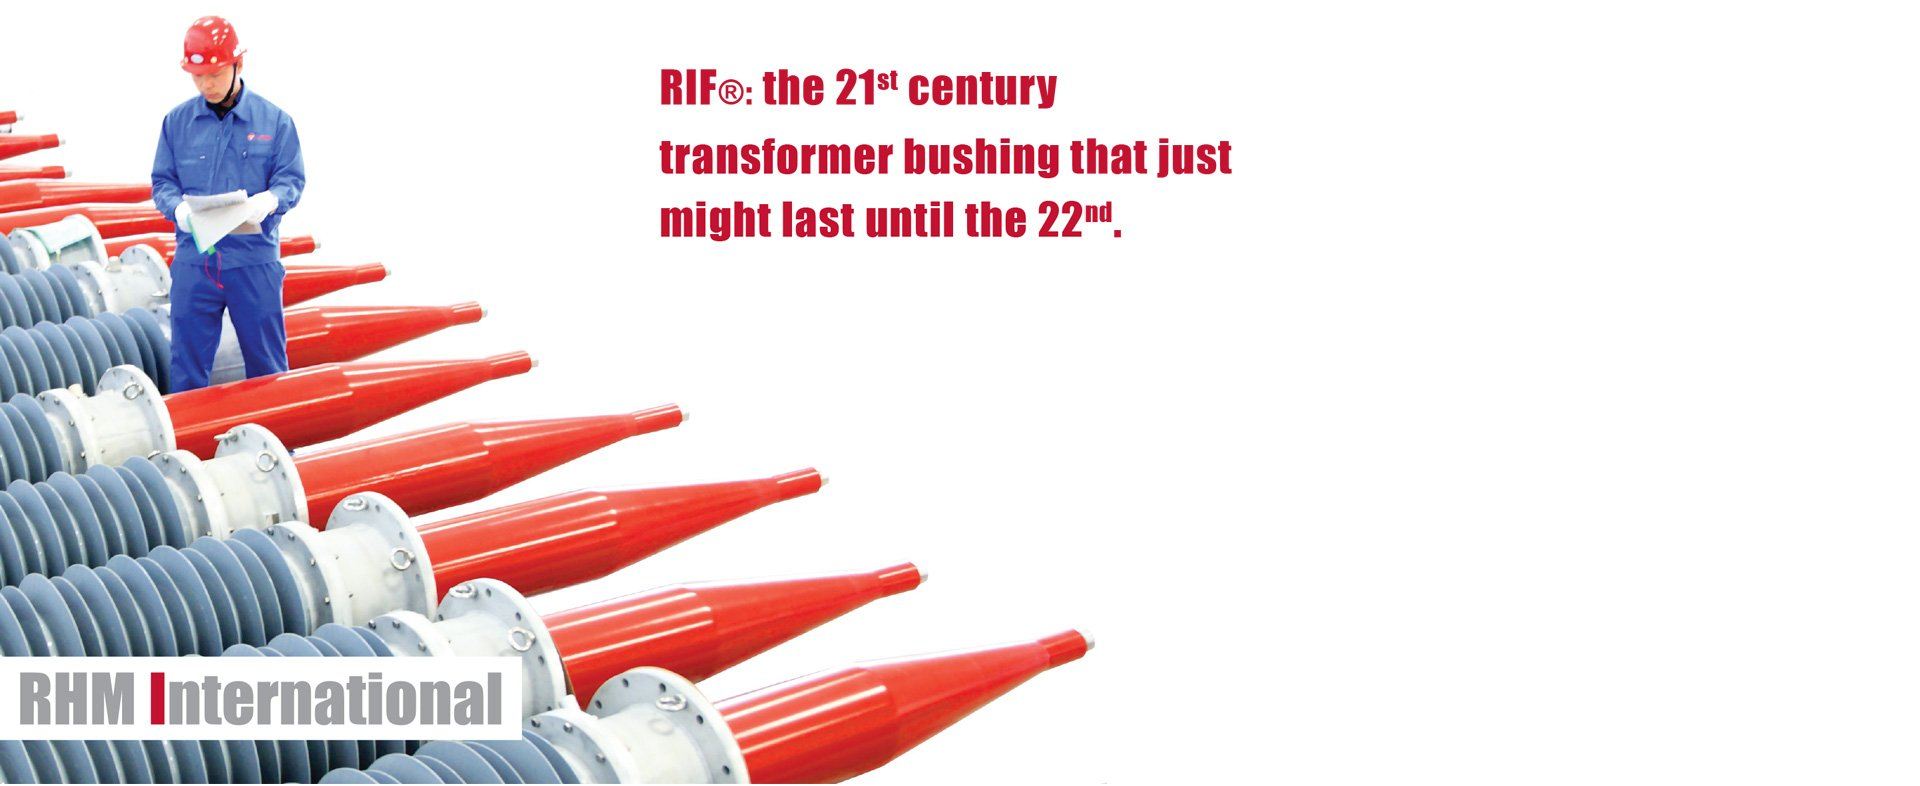 RIF dry technology transformer bushings - reliable and safe by RHM International